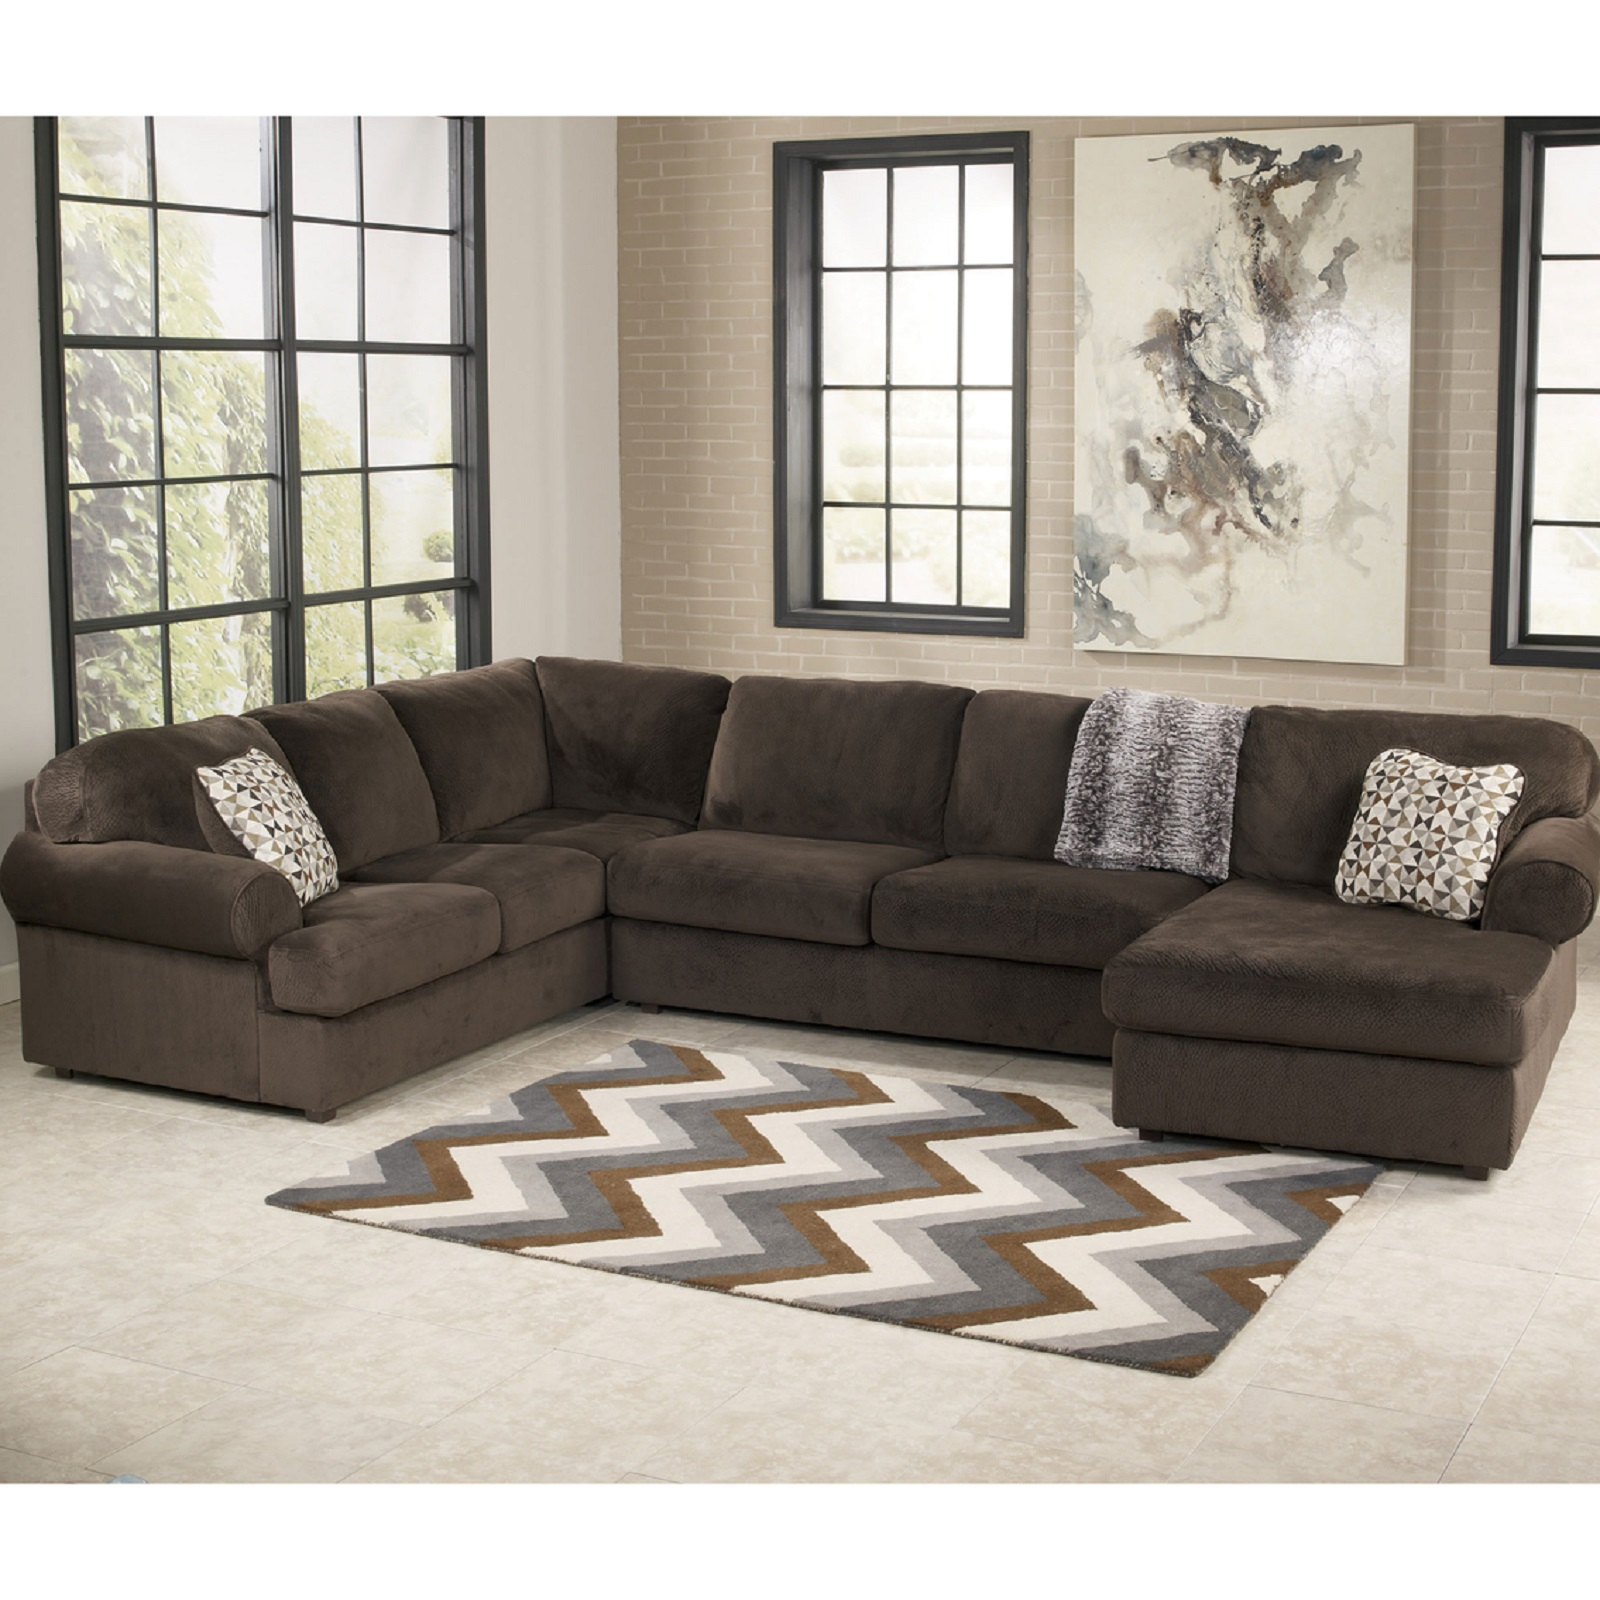 Signature Design by Ashley Jessa Place 3-Piece Sectional